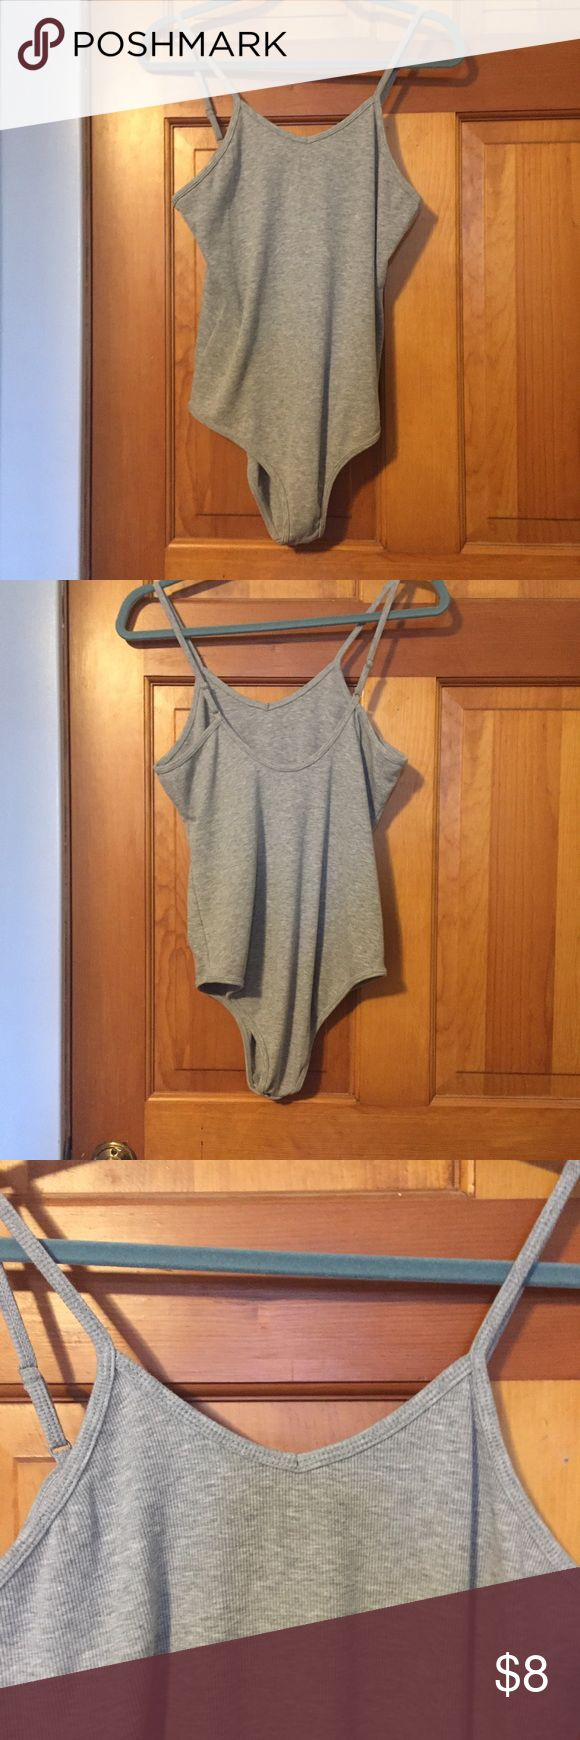 Weekend Soul gray ribbed bodysuit (size XL) Weekend Soul gray ribbed bodysuit. Leotard. Size XL. Comfortable and stretchy. Snaps at the crotch. Weekend Soul Tops Tank Tops